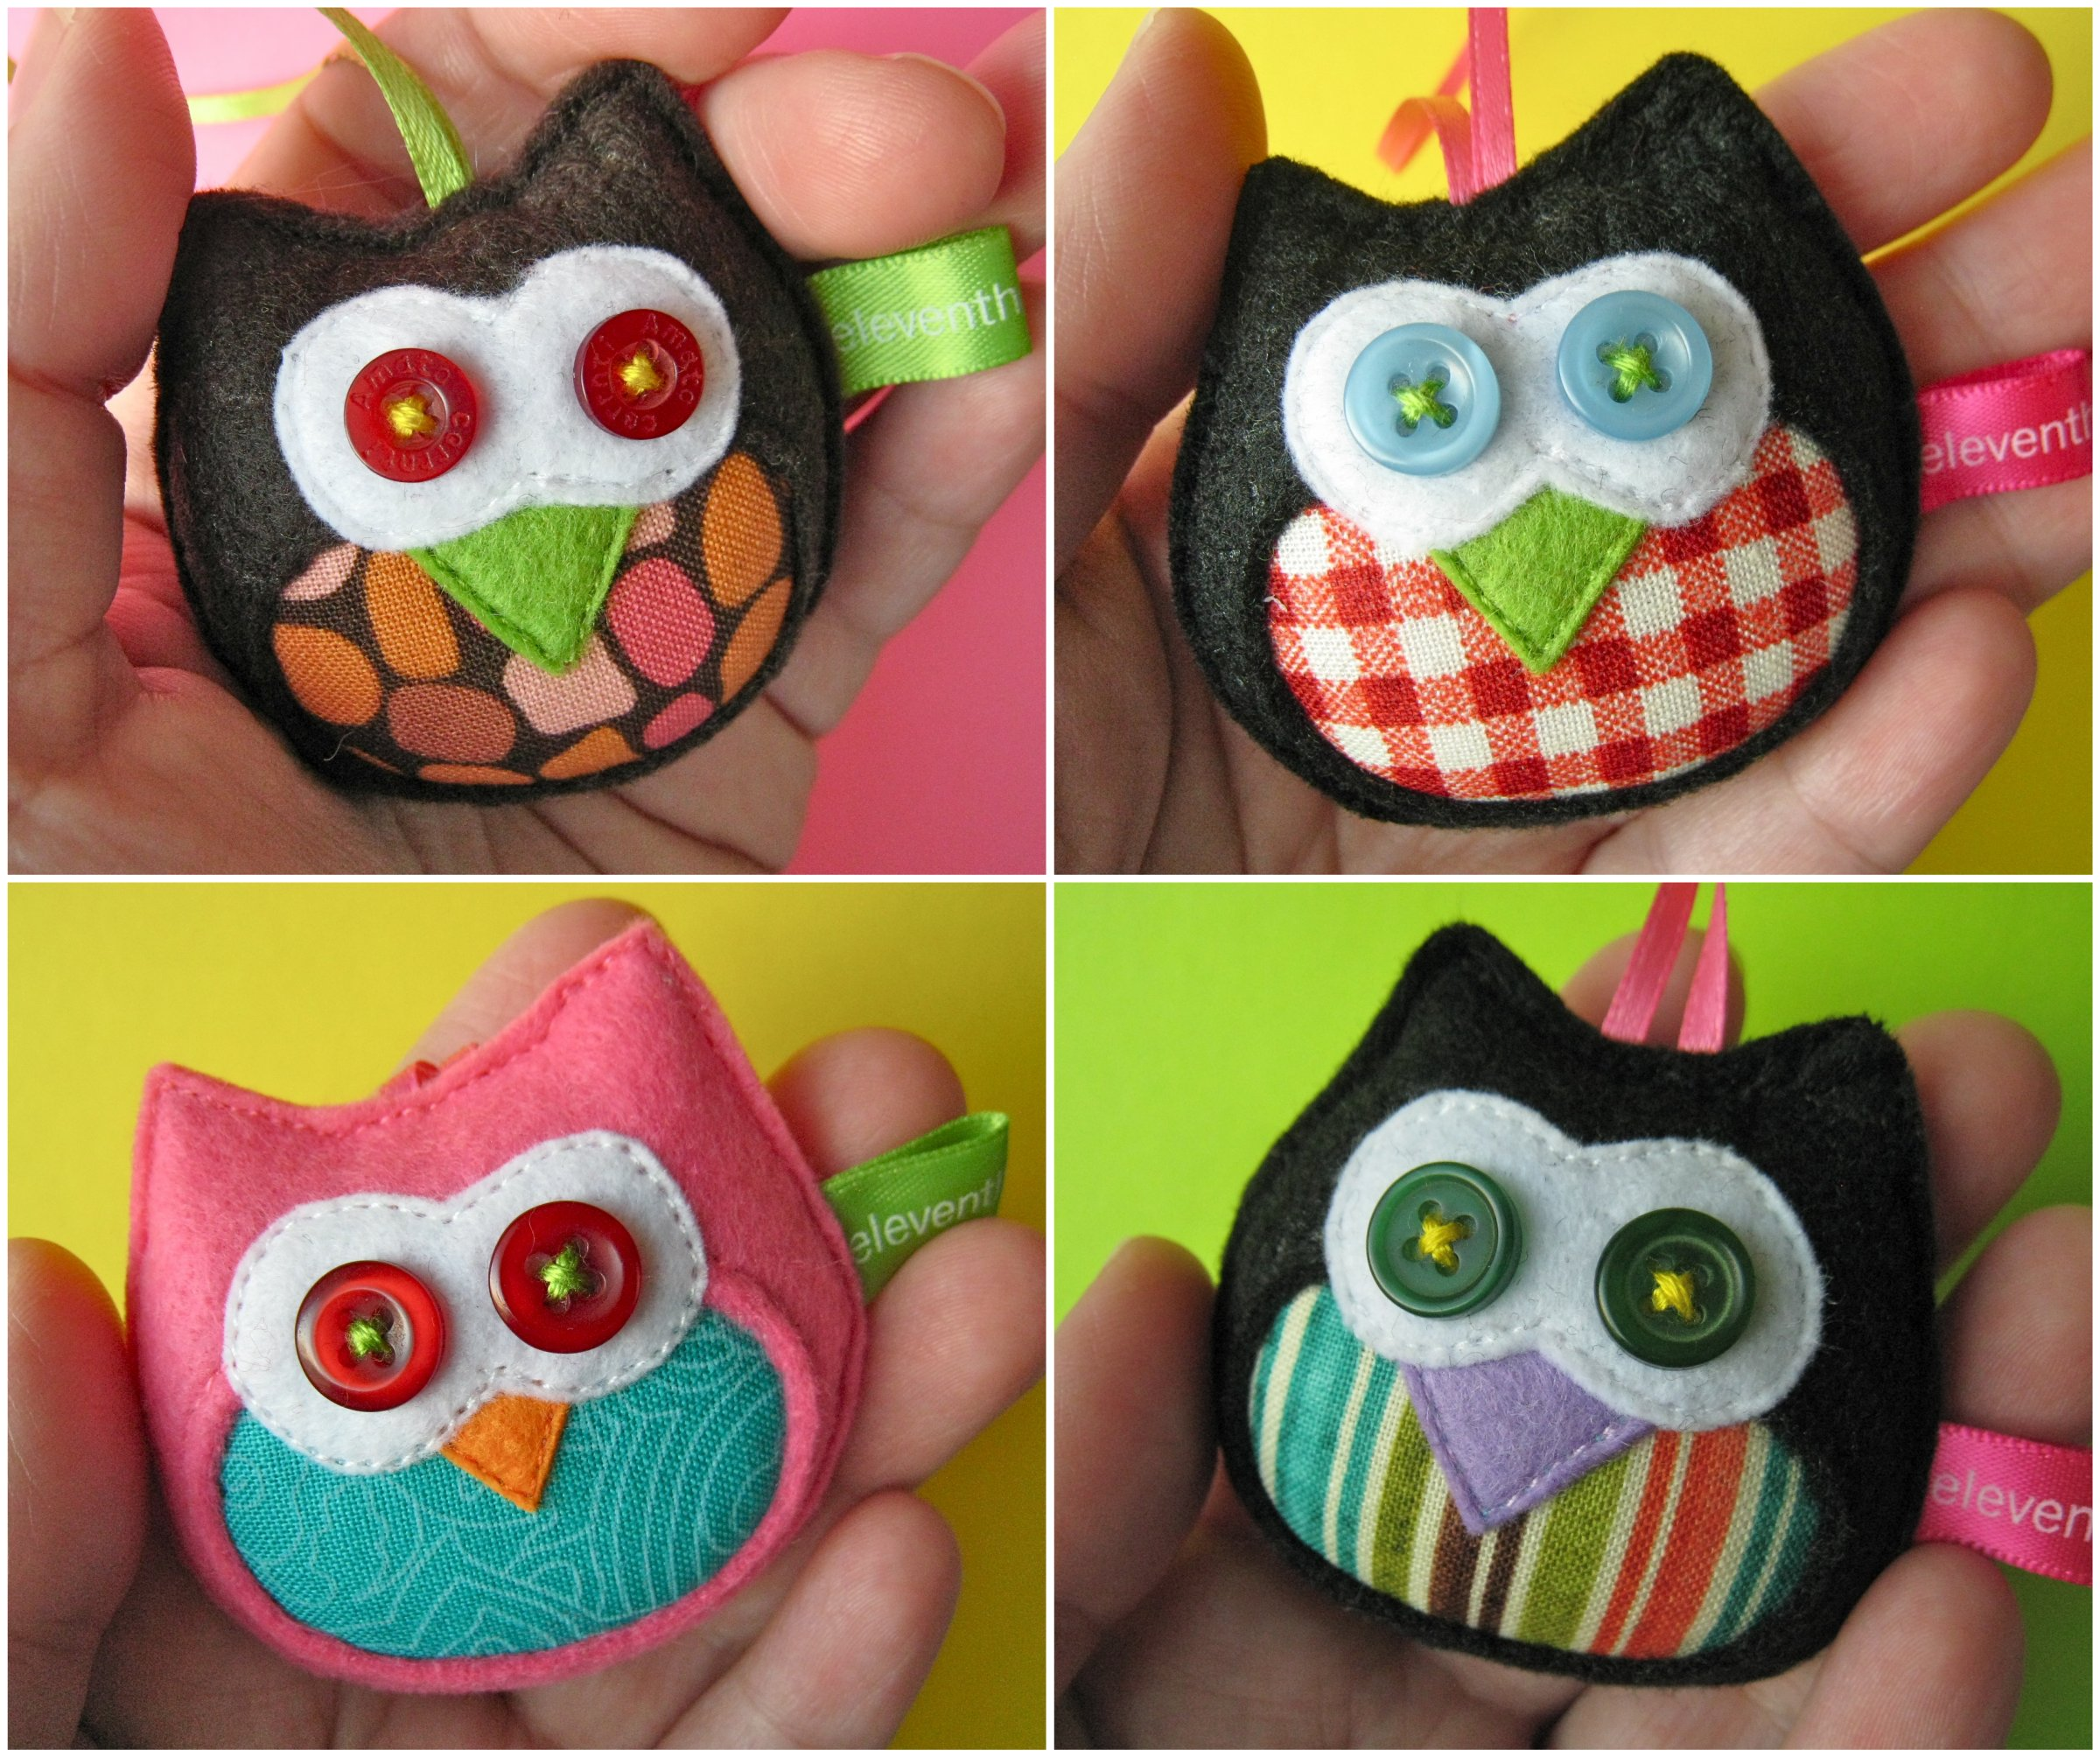 The tiny leftover owls